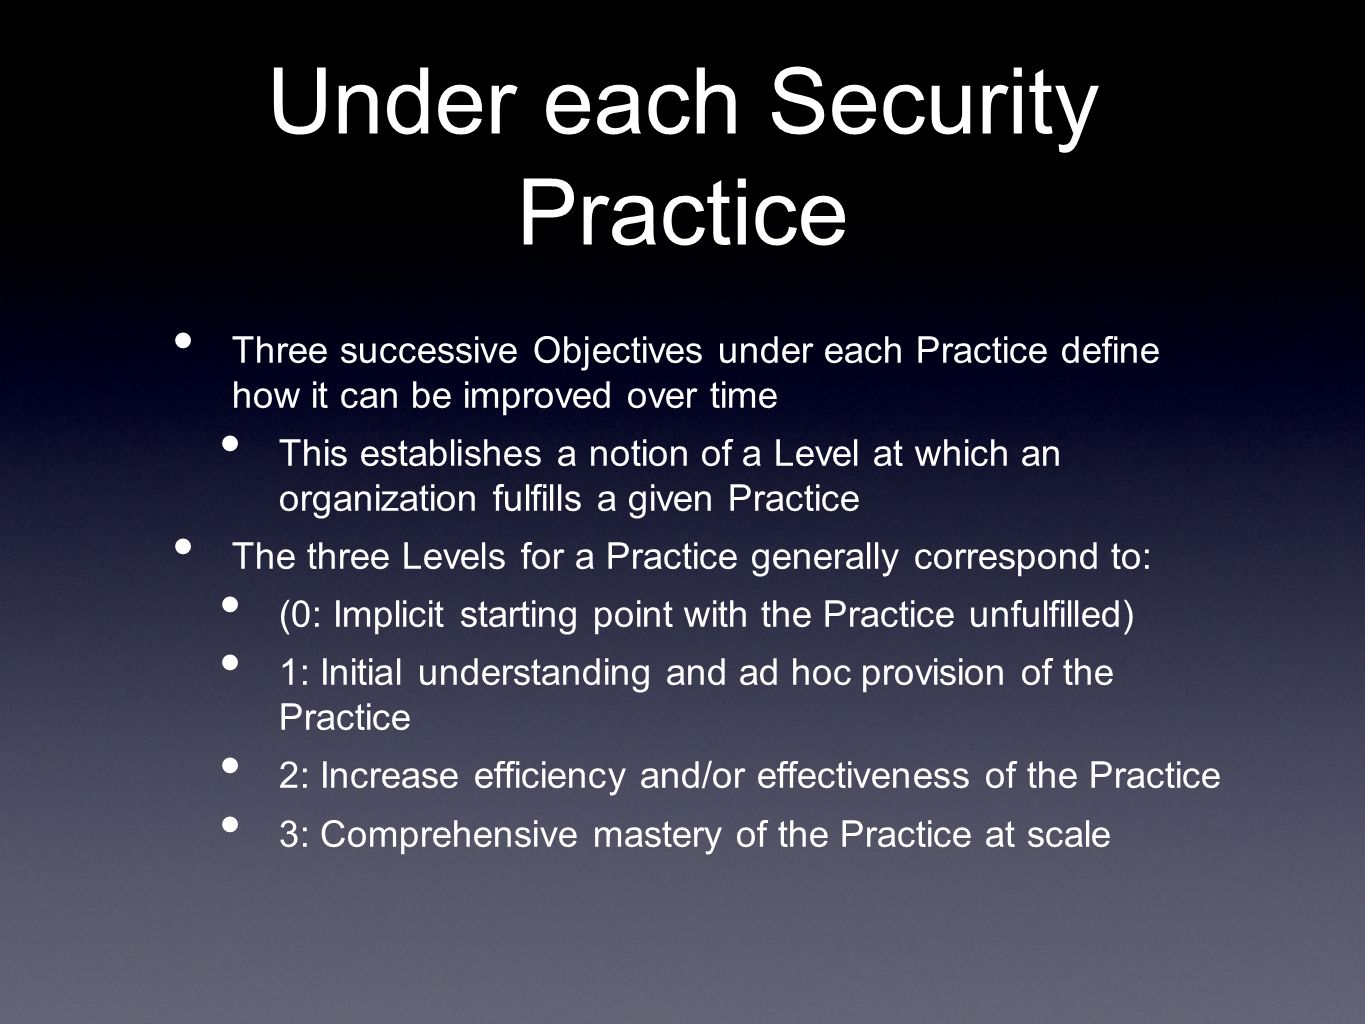 Under each Security Practice